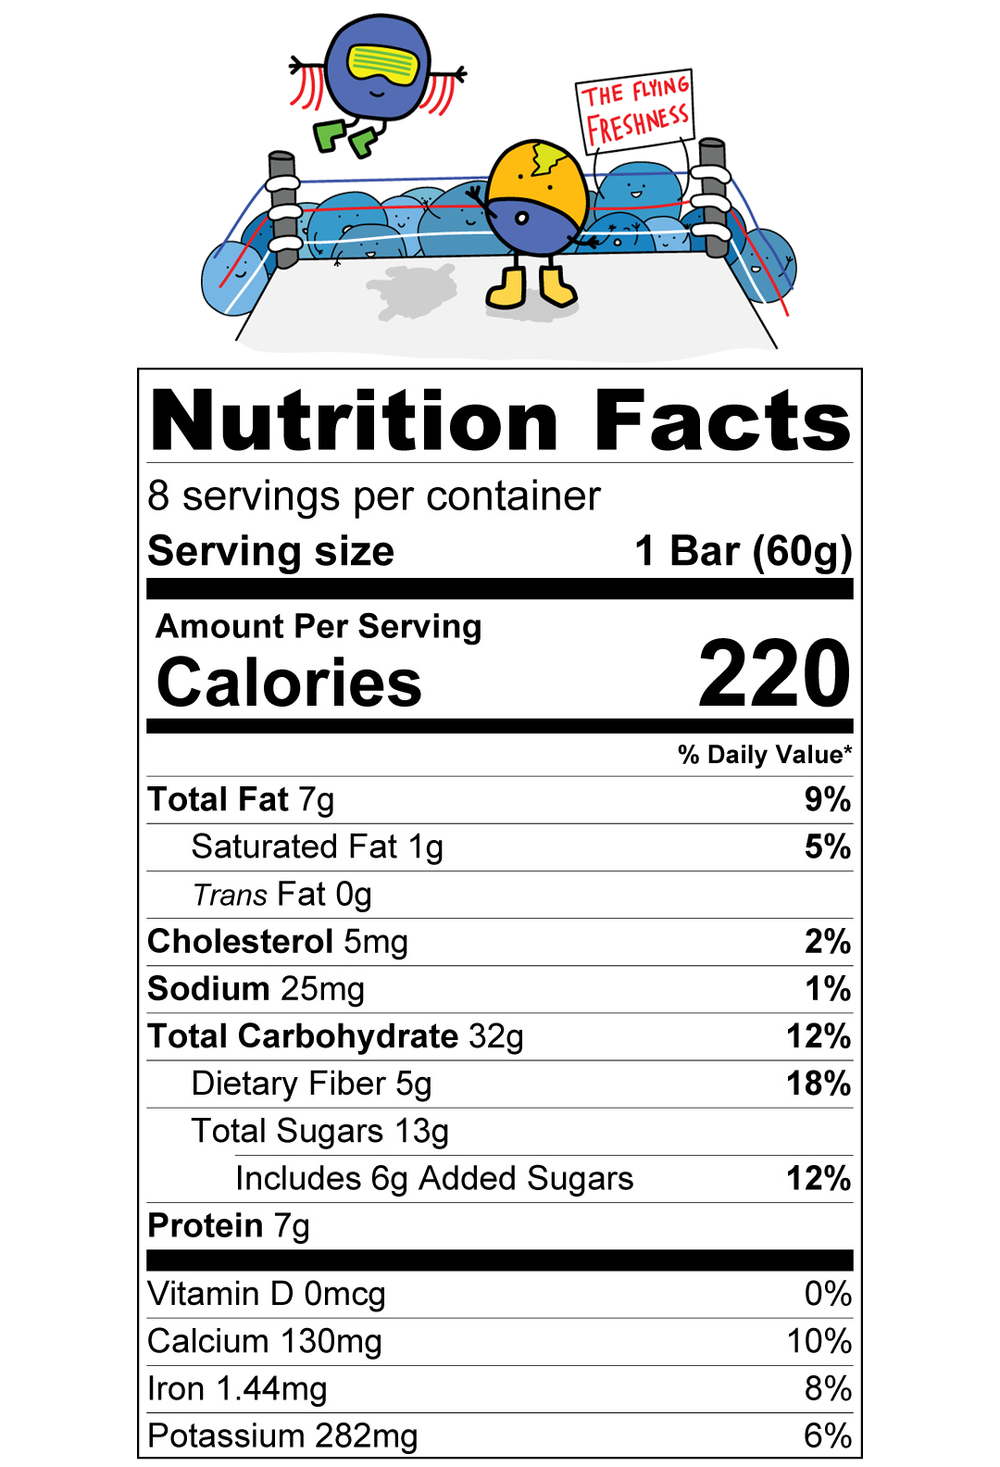 Blueberry Chia Nutrition Facts with Cartoon.png